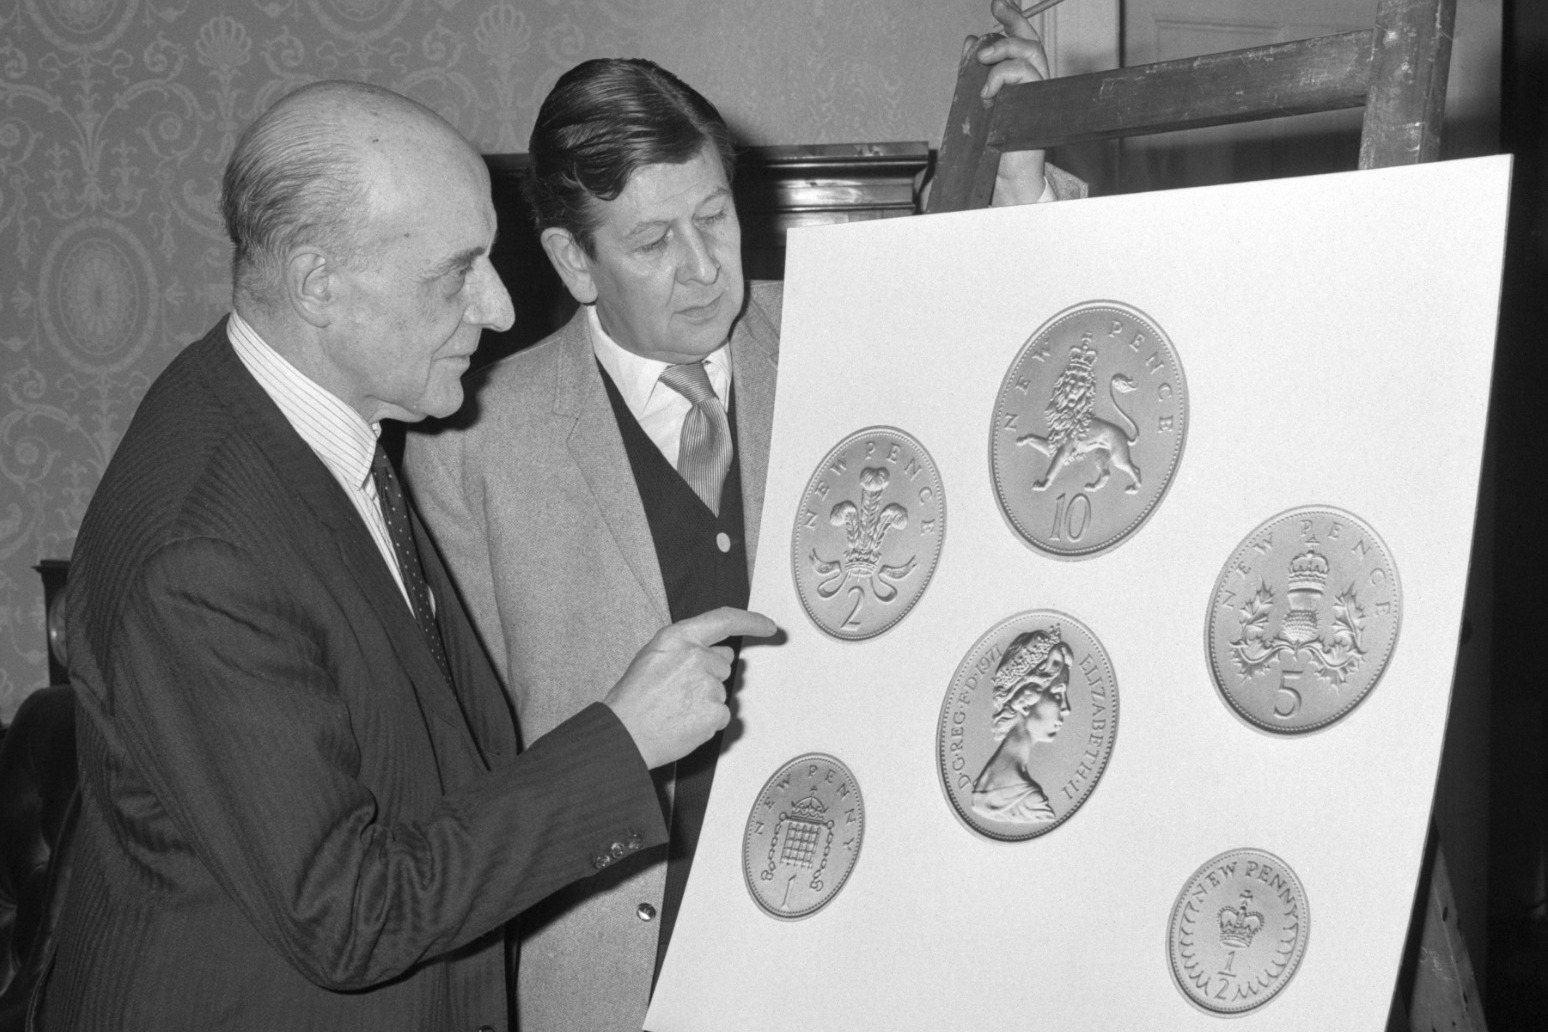 Royal Mint 'had a long and close relationship with the Duke of Edinburgh'